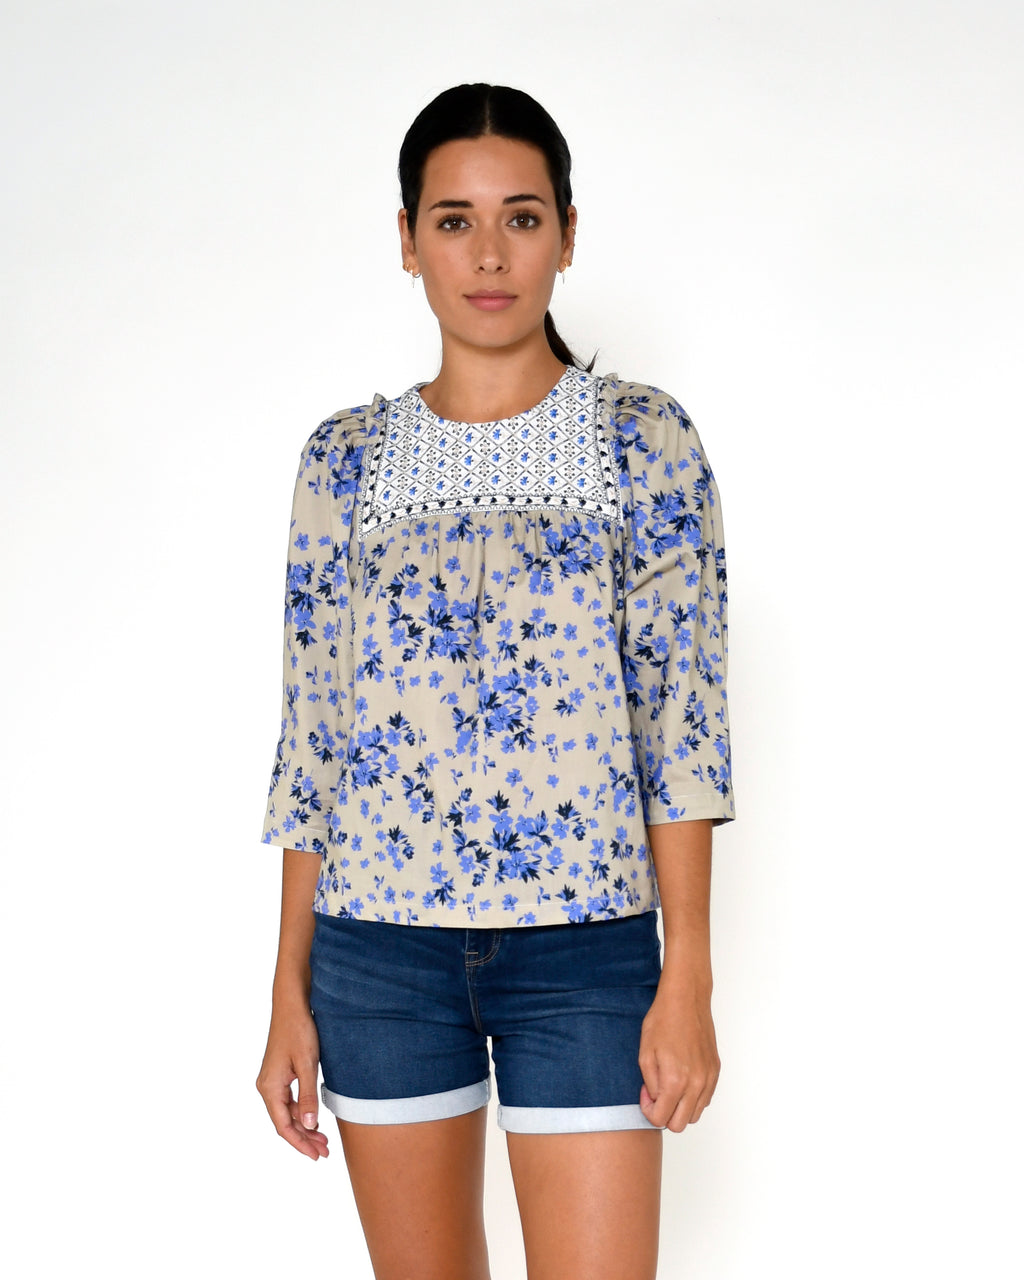 CT18921 - COUNTRY FLORAL EMBROIDERED TOP - tops - blouses - This feminine embroidered top features our bold country floral print, delicate embroidery and ruffle detail along the shoulders. Add 1 line break Stylist Tip: Pair with your favorite denim.